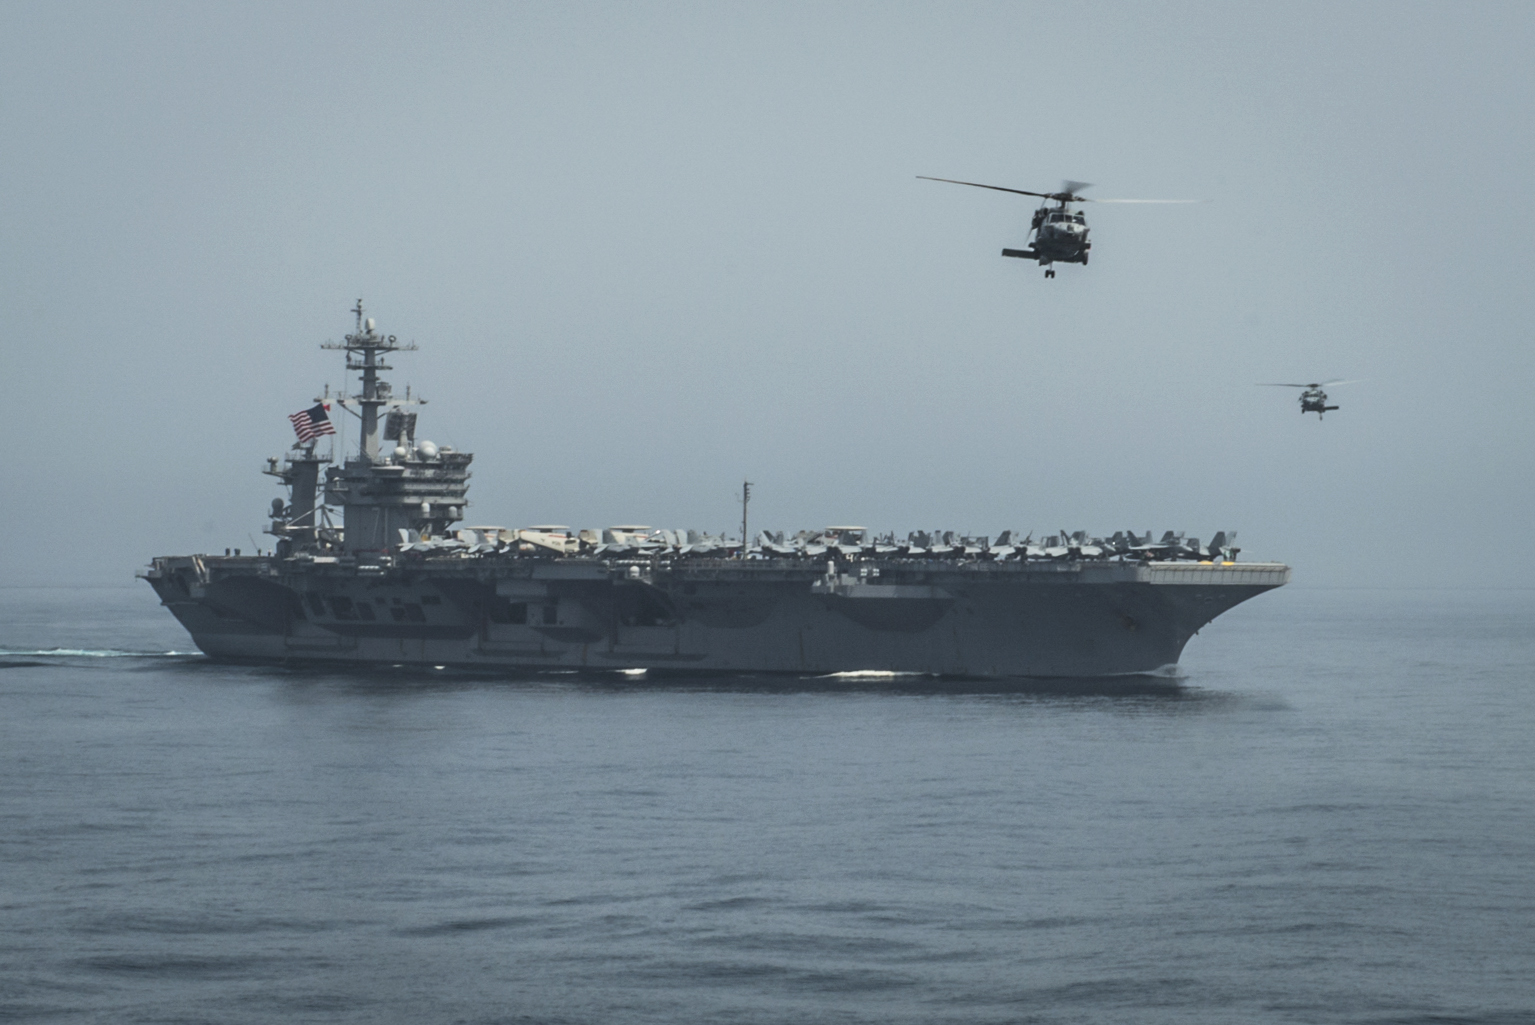 Helicopters fly from the aircraft carrier USS Theodore Roosevelt (CVN-71) on April 13, 2015. US Navy Photo